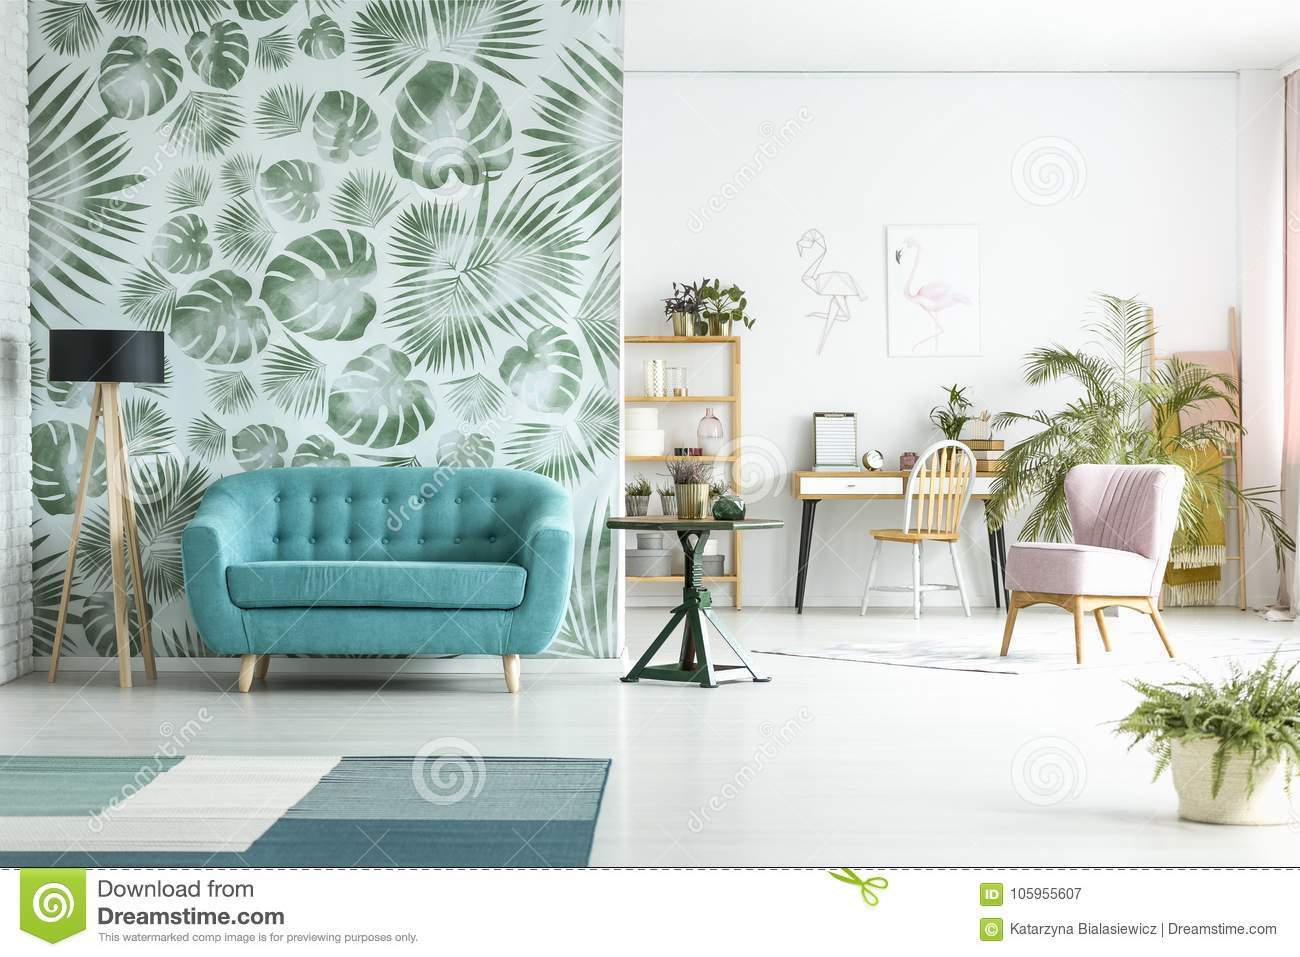 Surprising Spacious Room With Blue Couch Stock Image Image Of Gmtry Best Dining Table And Chair Ideas Images Gmtryco